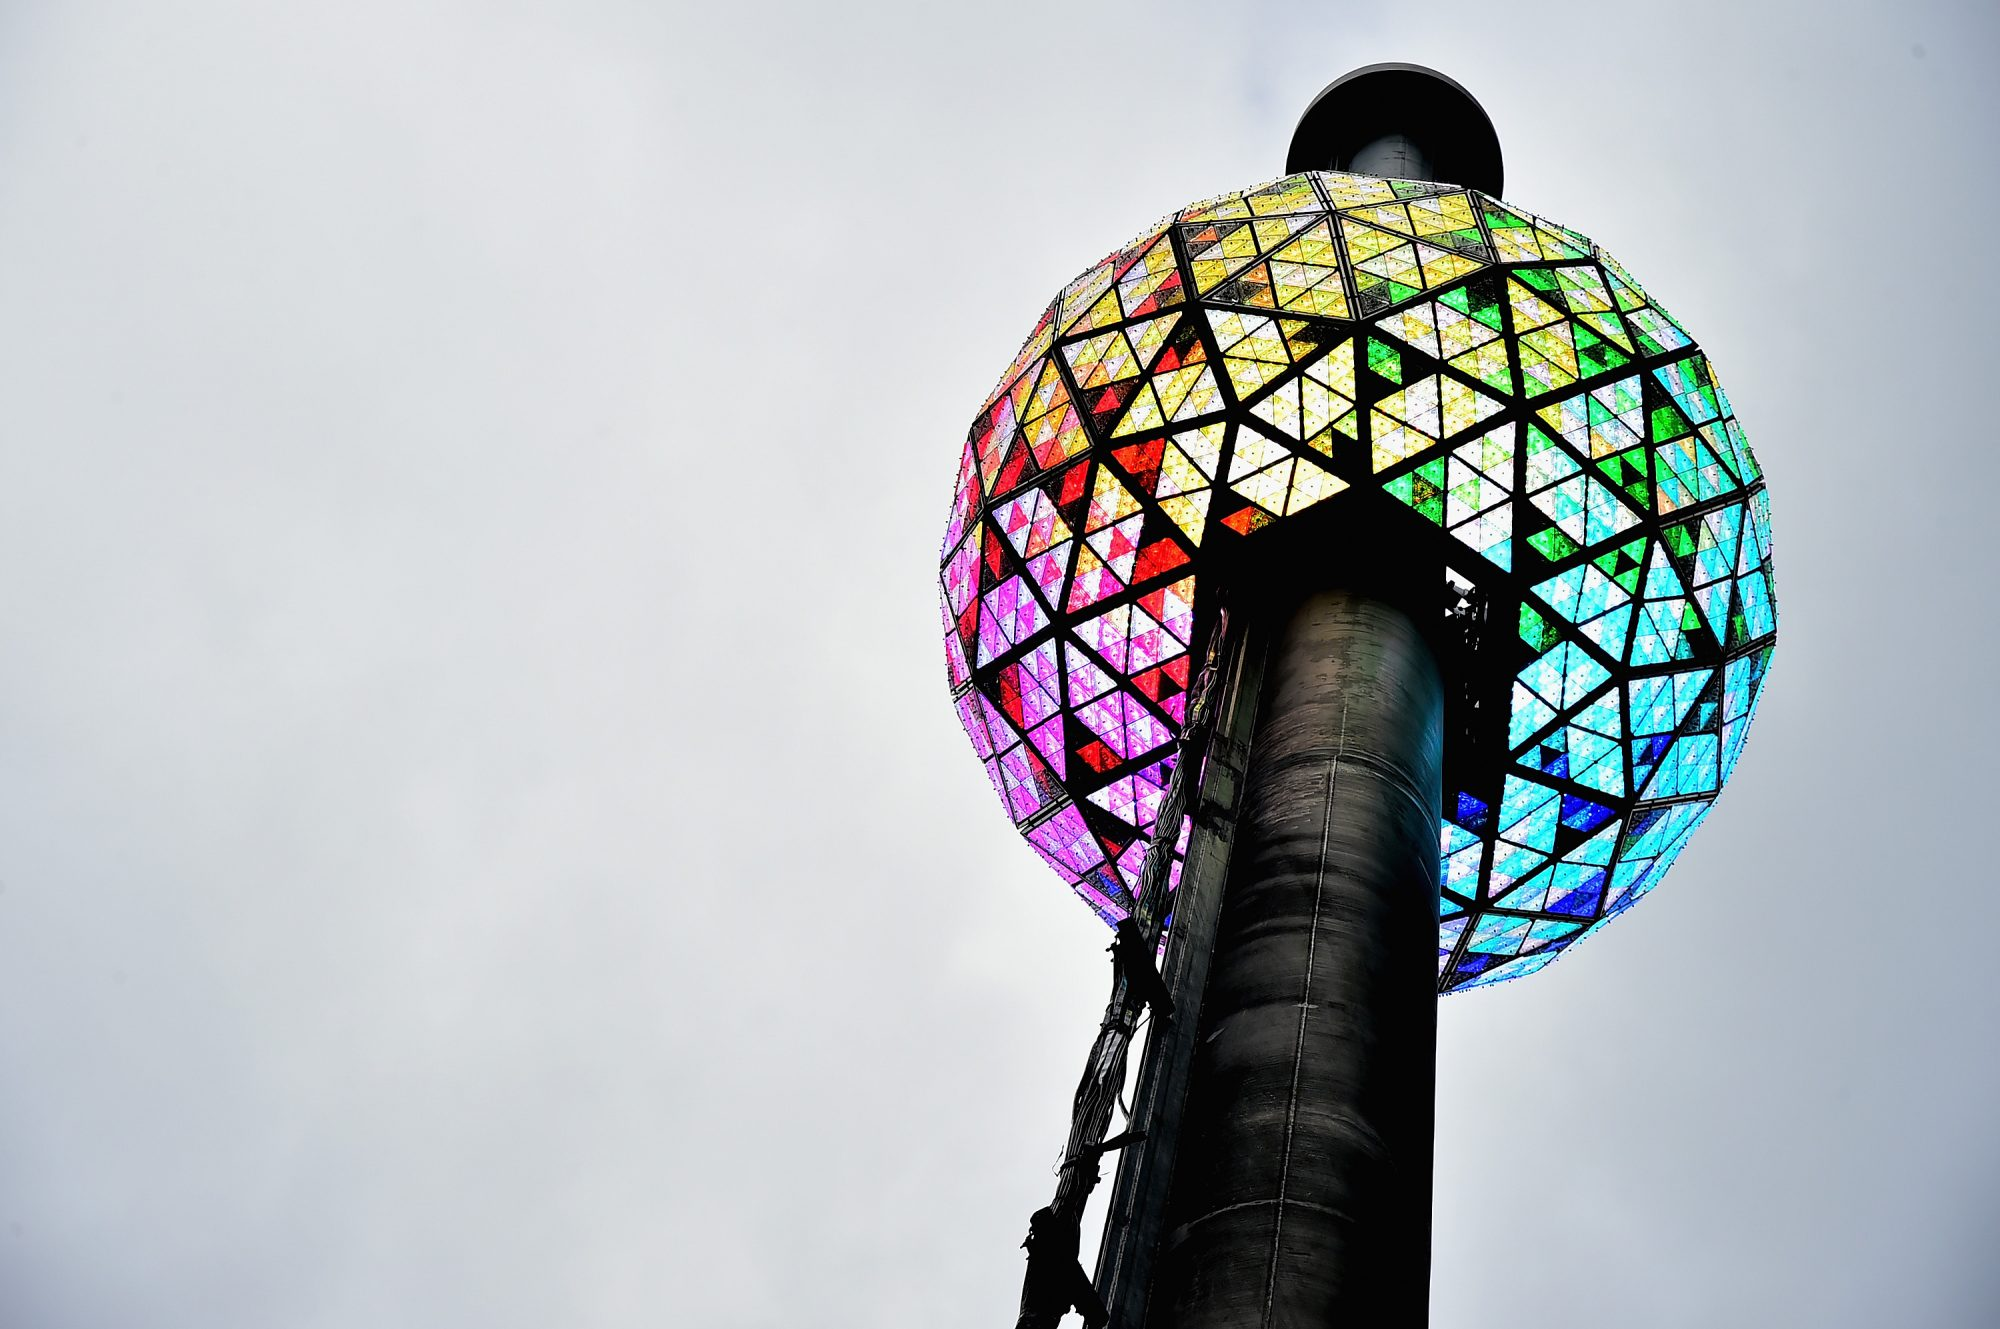 nye Times Square ball drop